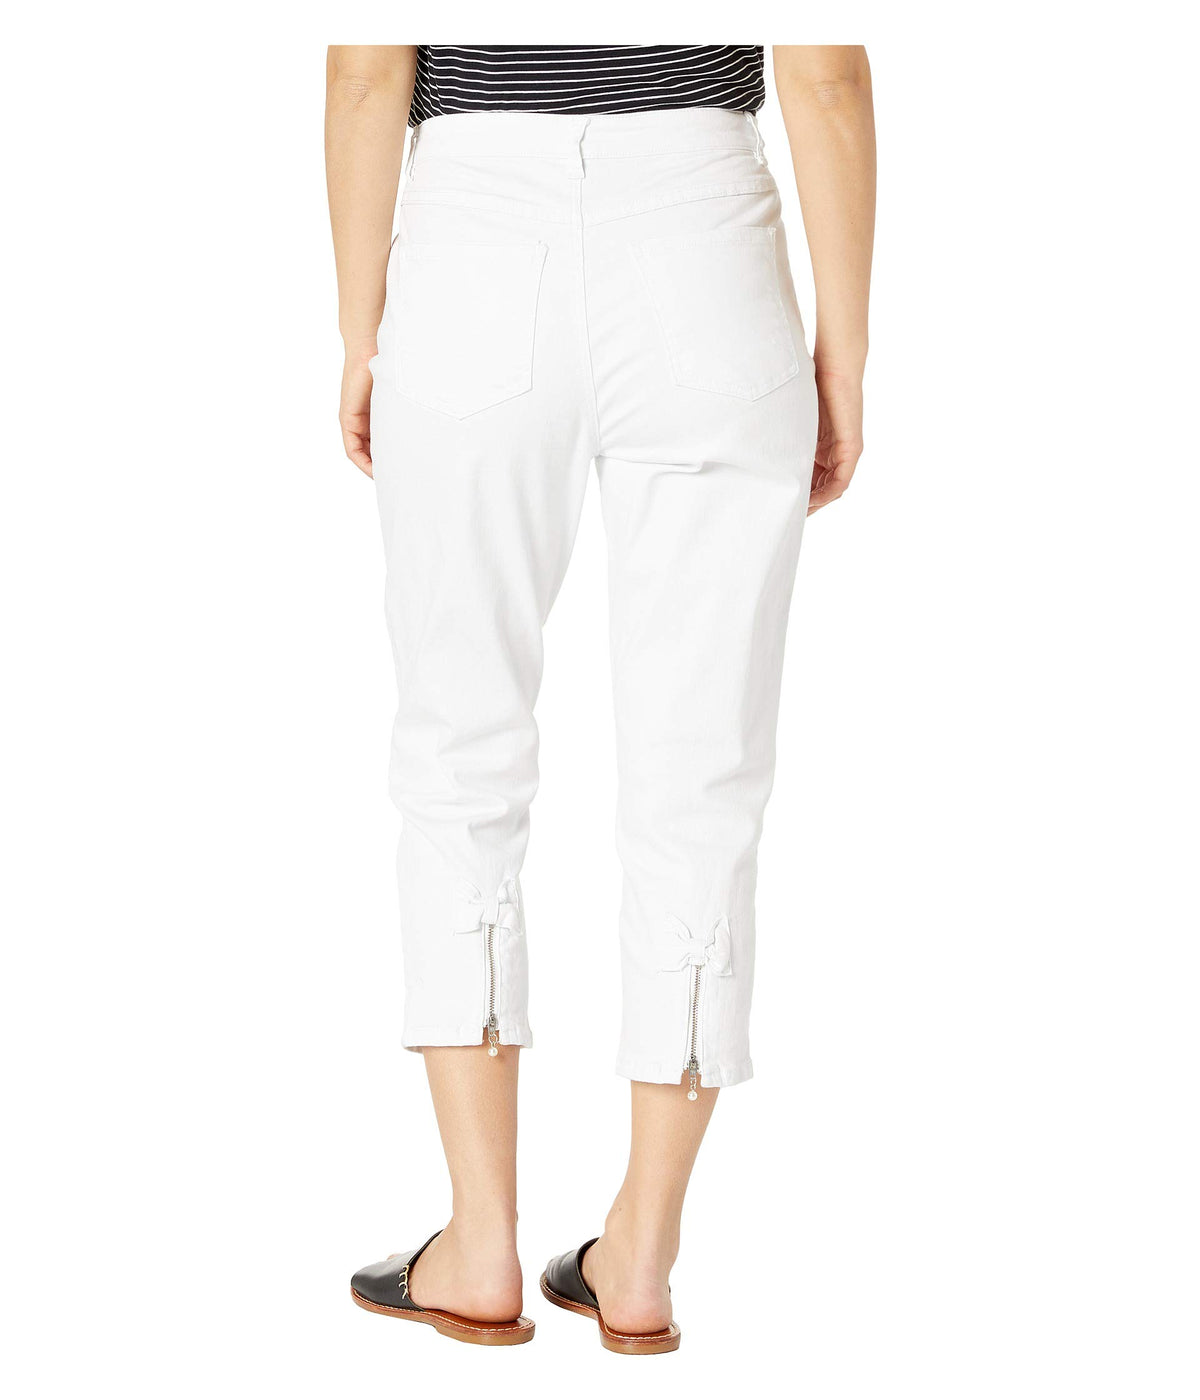 Petite Statement White Denim Suzanne Crop in White